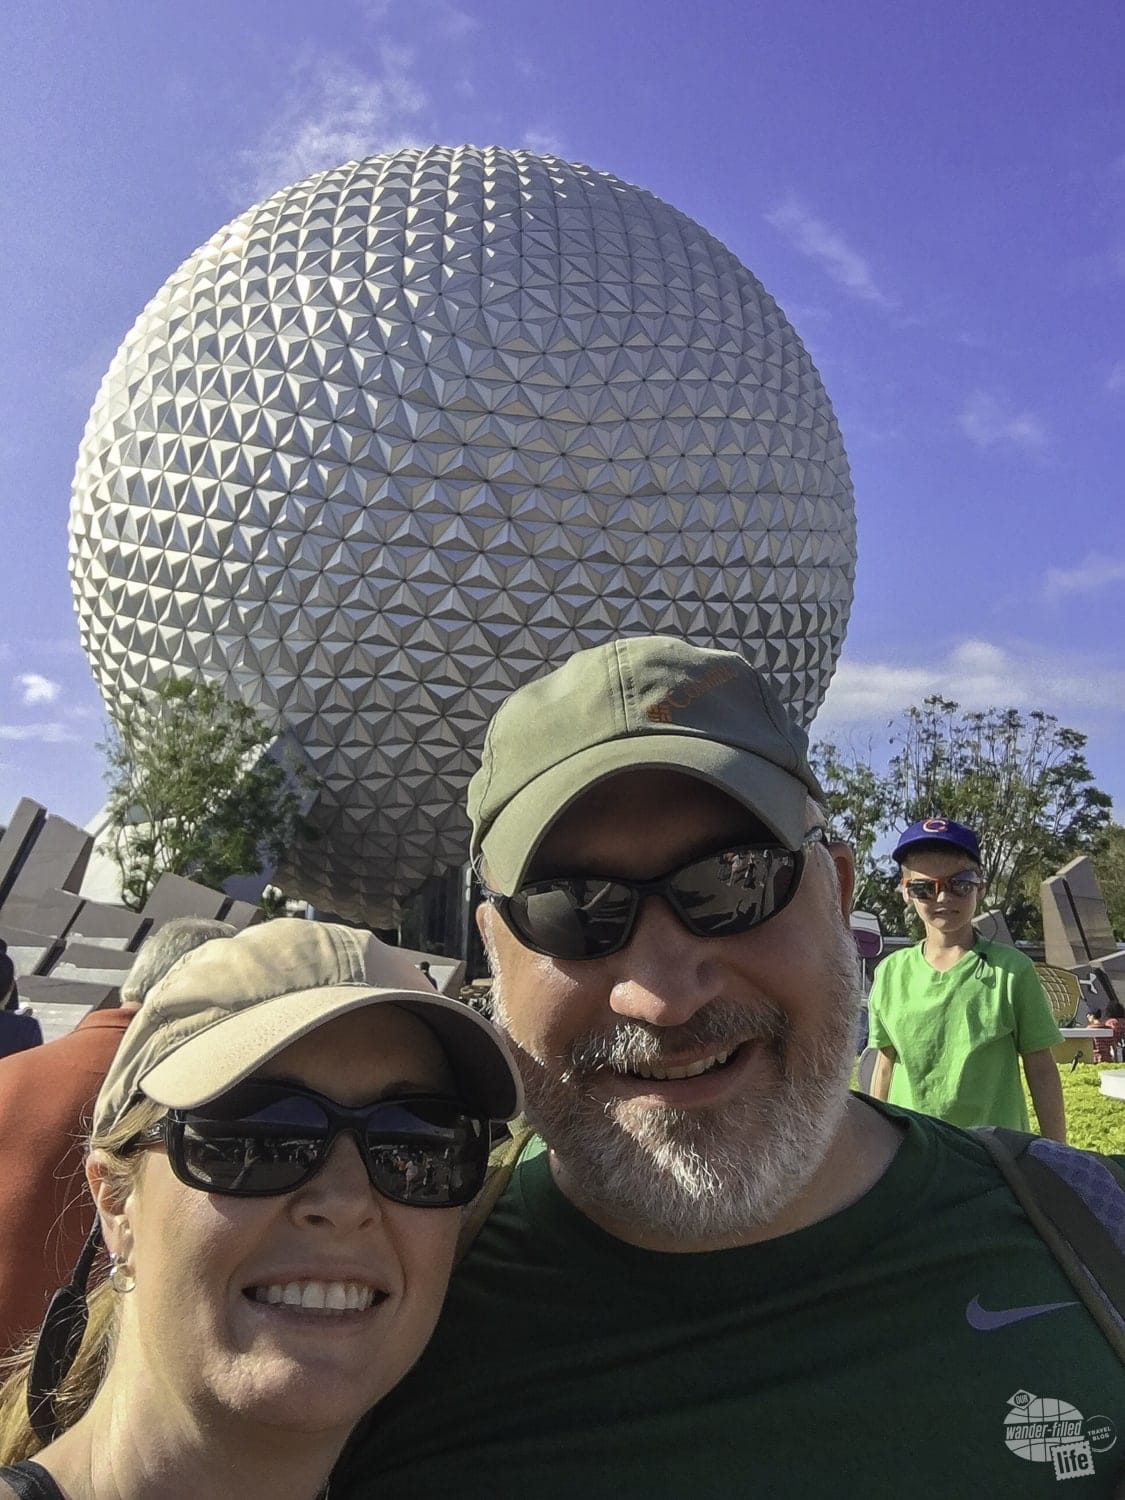 Grant and Bonnie enter Epcot ready to enjoy the Food & Wine Festival!